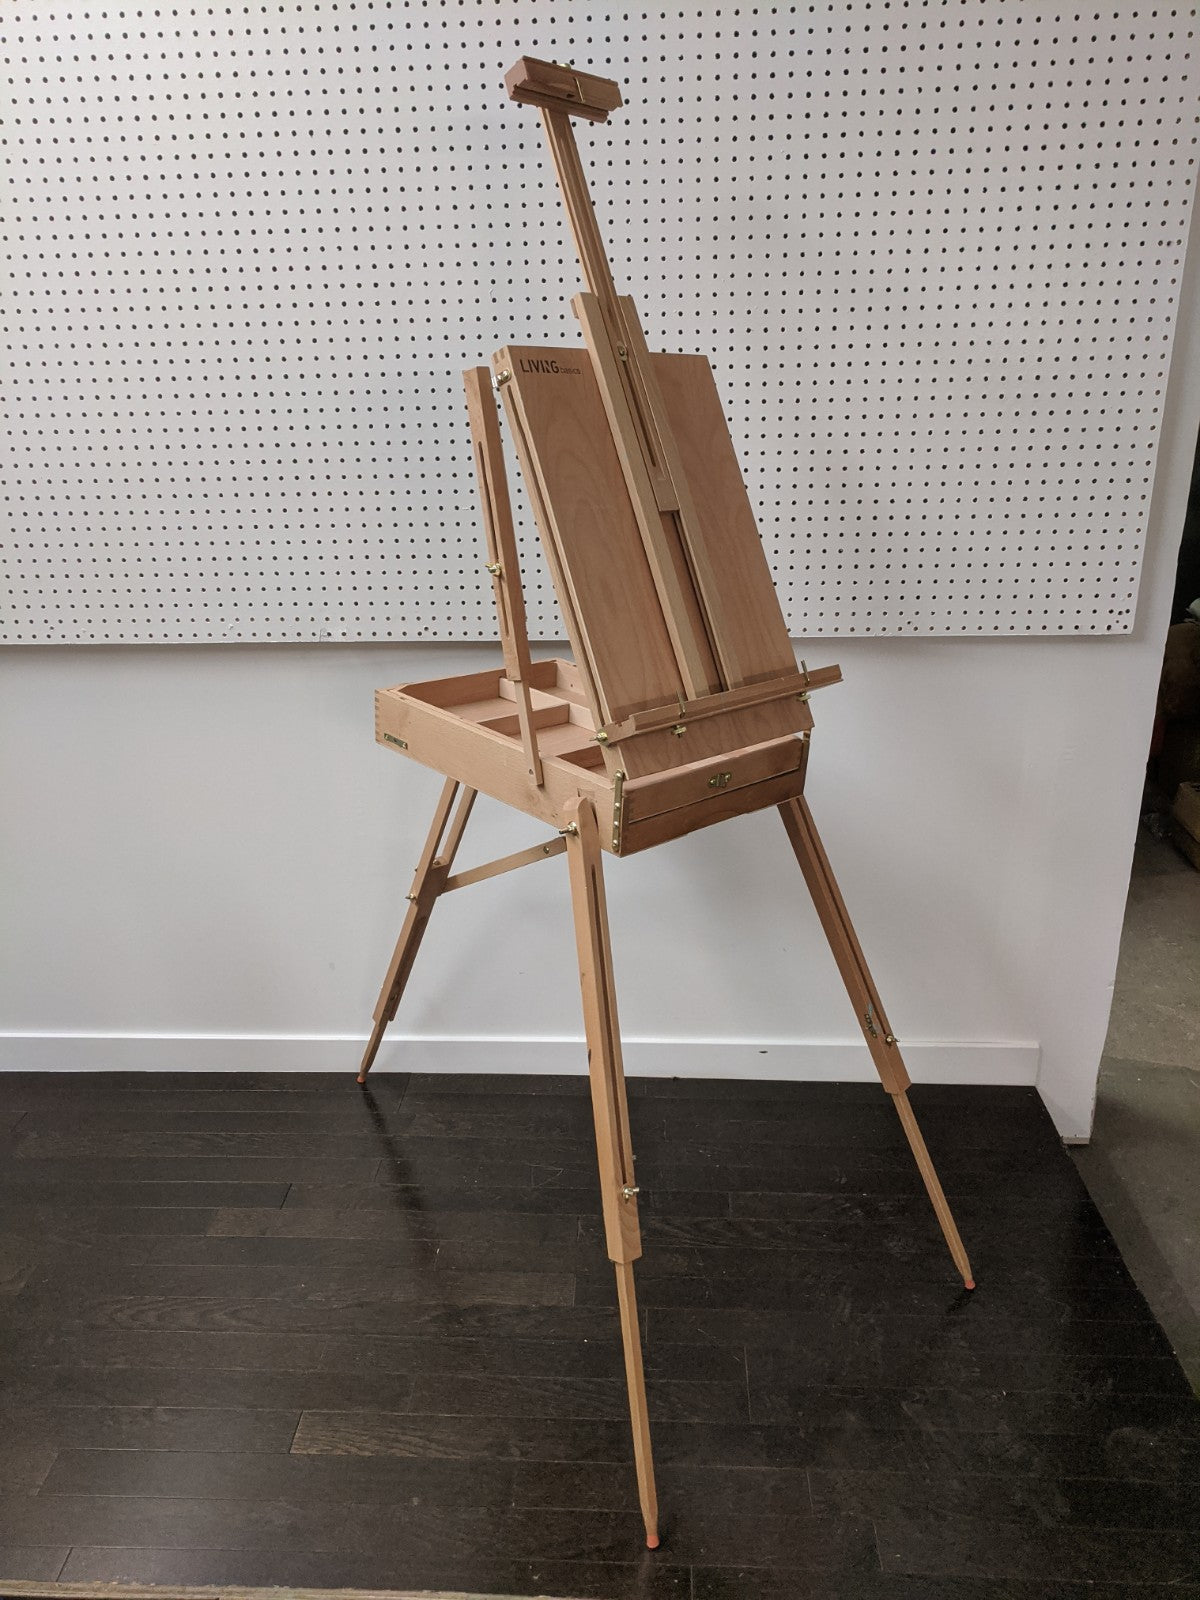 LIVINGbasics Portable Wooden Easel Stand